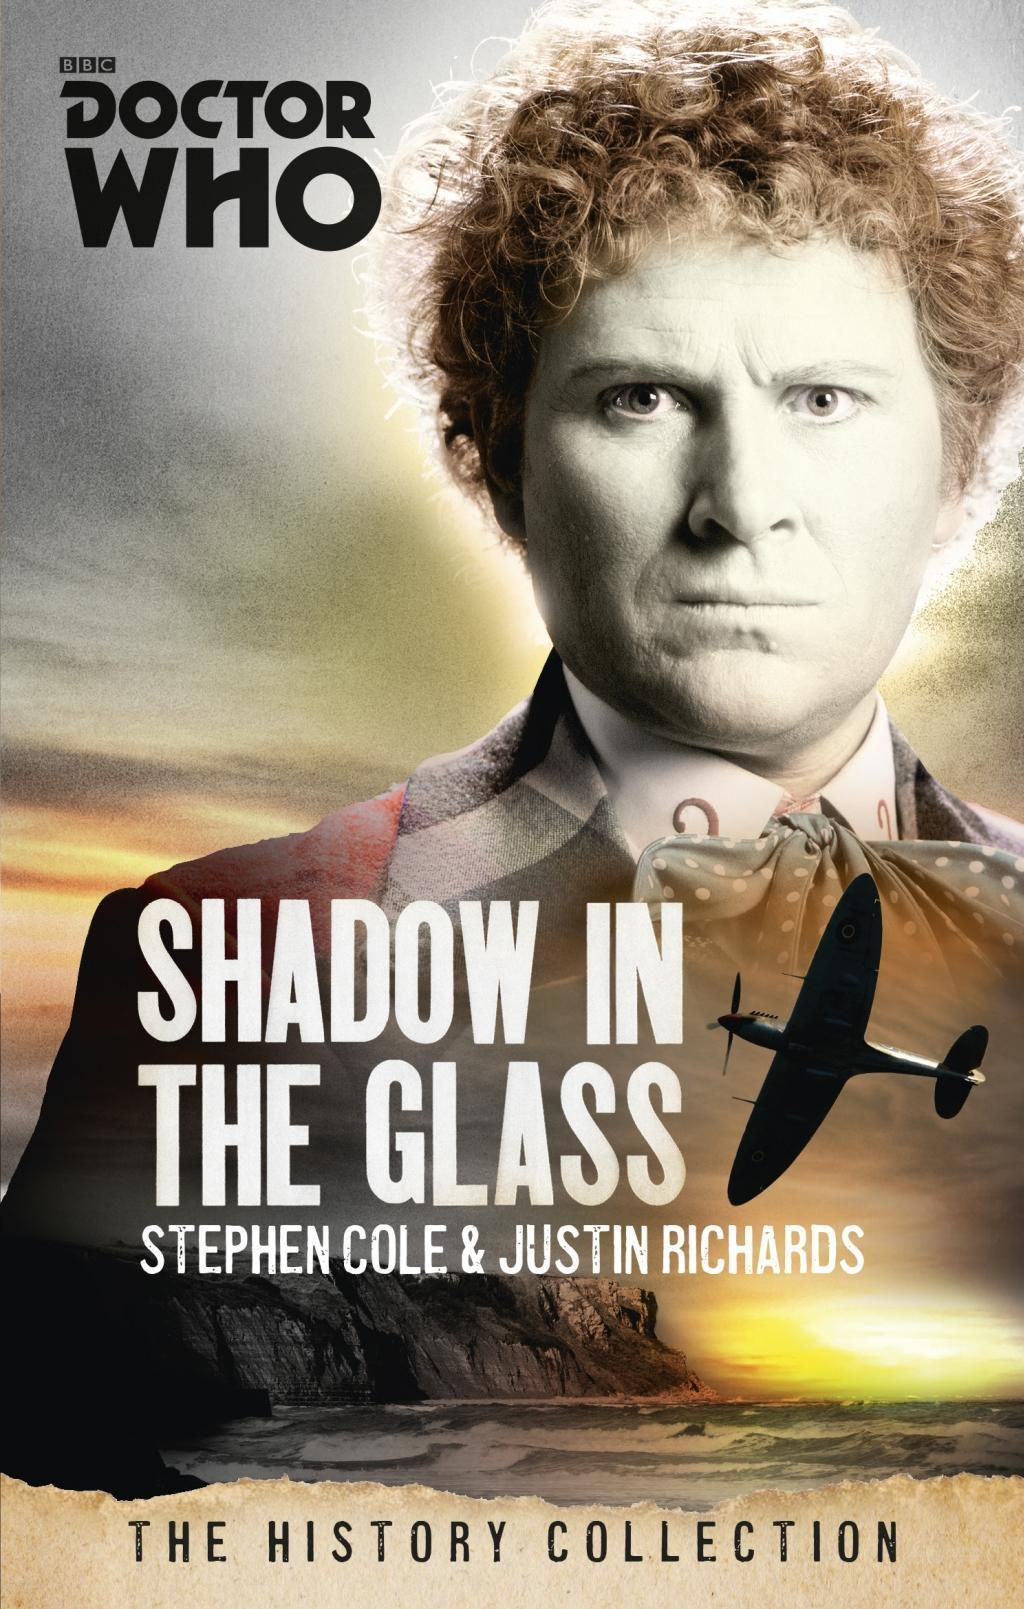 Doctor Who: The Shadow In The Glass